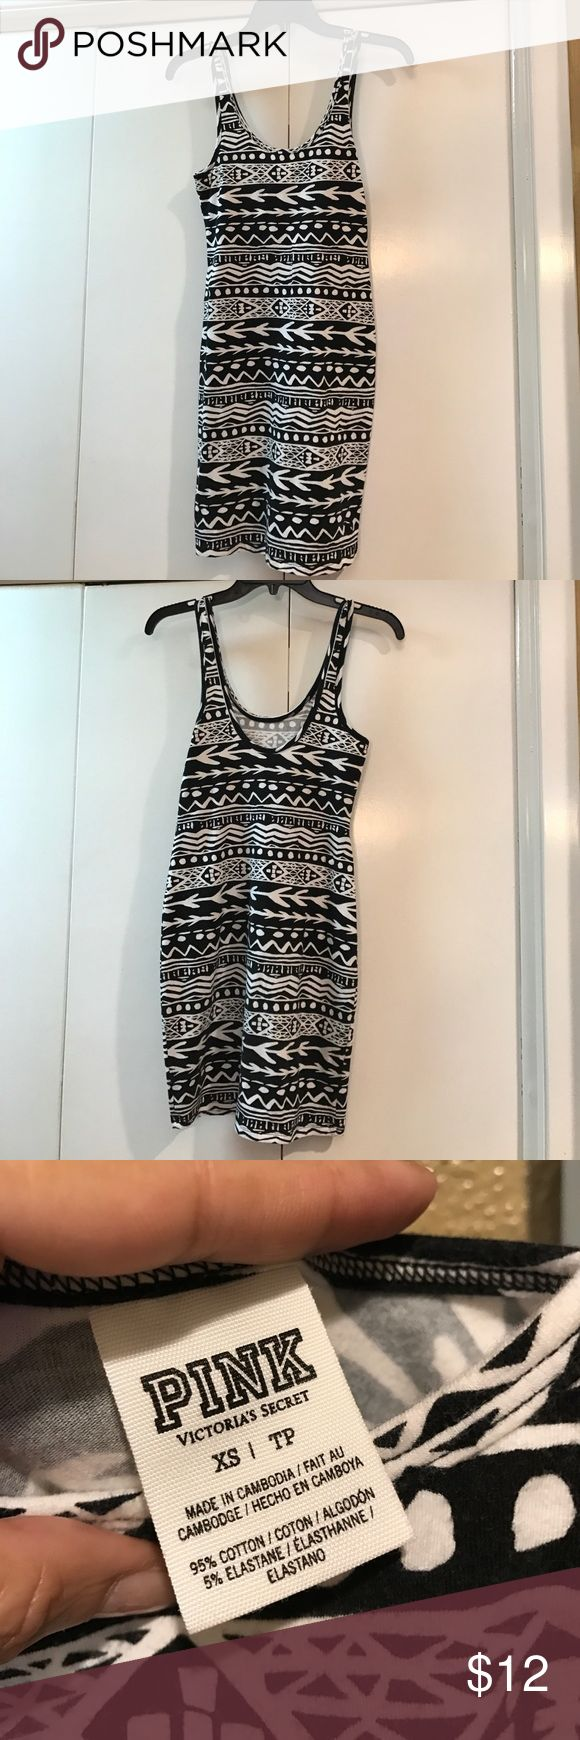 PINK VICTORIAS SECRET AZTEC BODY CON DRESS Cute and stylish! Good pre-owned condition, with some piling. 95% cotton/ 5% spandex PINK Victoria's Secret Dresses Mini